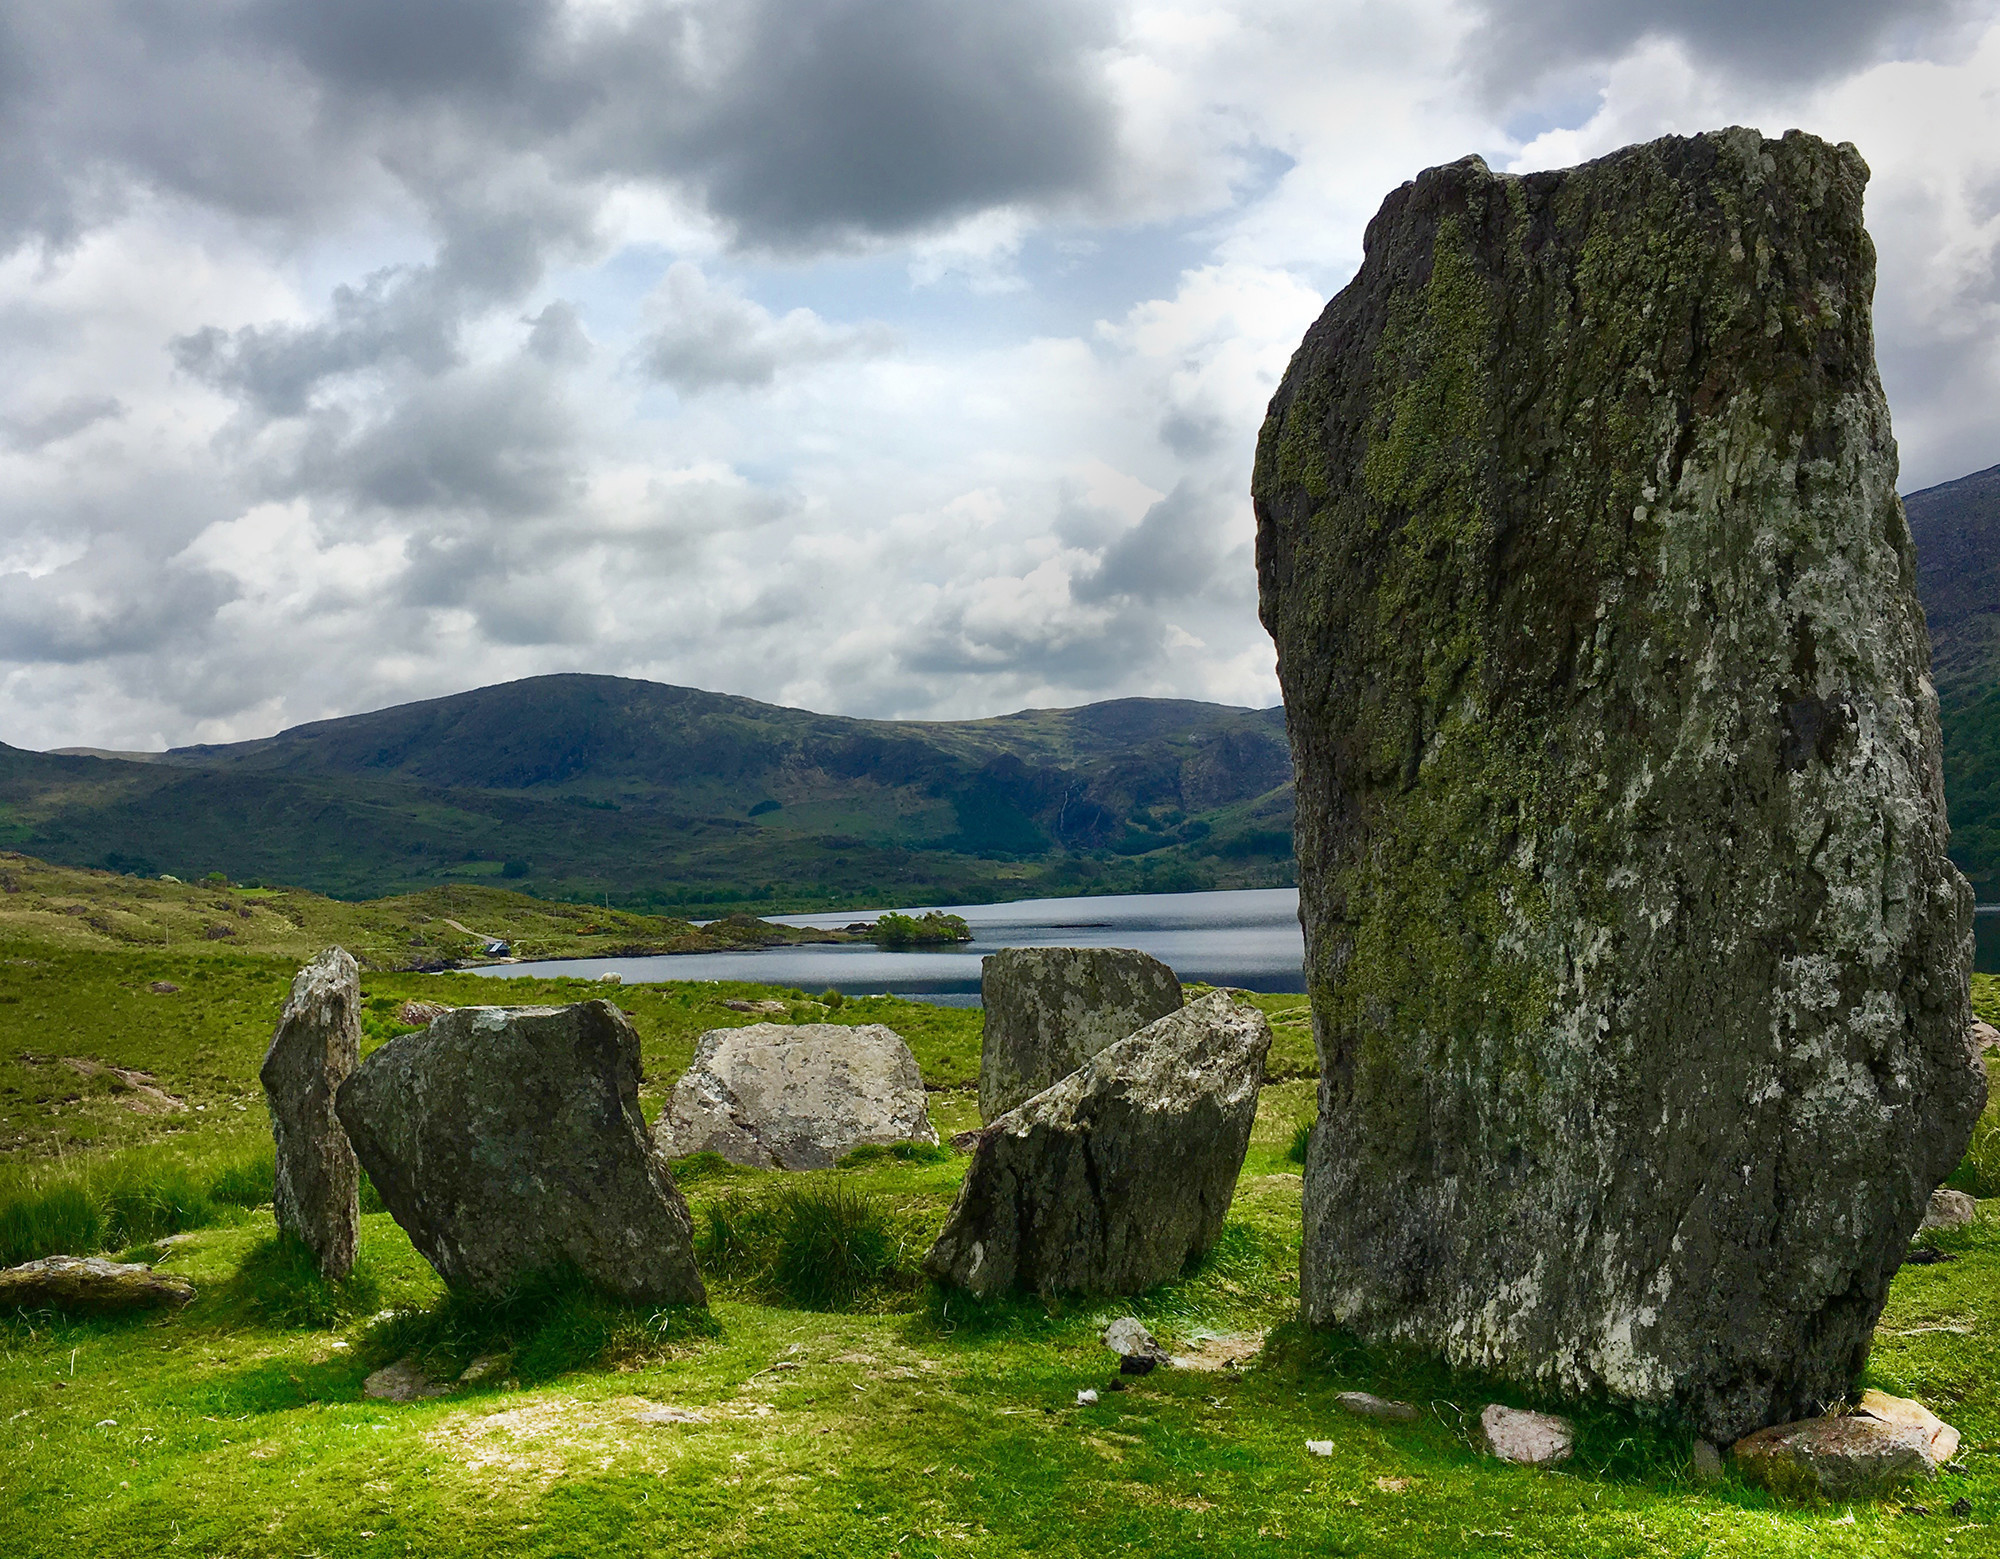 Kenmare sits rich with history on Irelands southwest